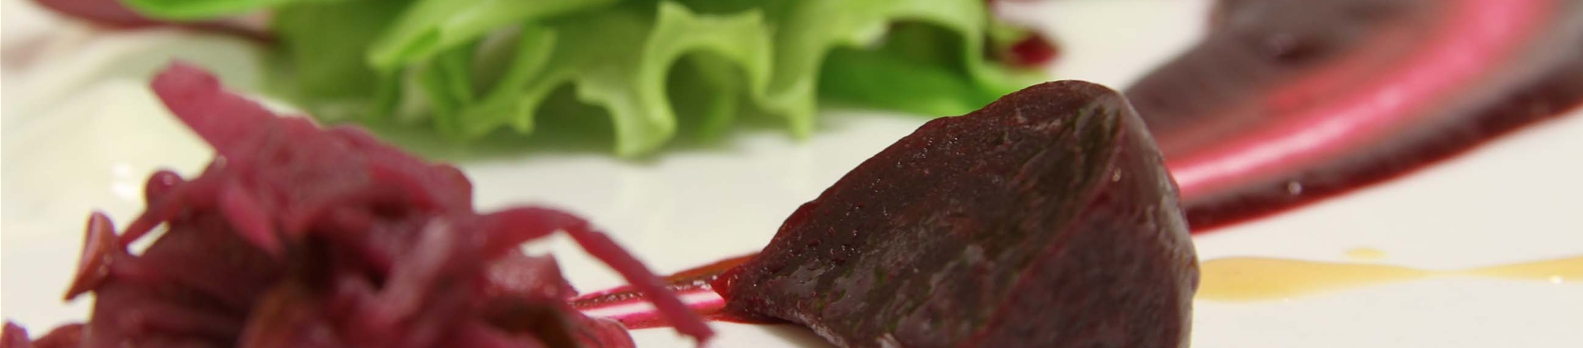 Farm to Table: The New Standard Set by AG Inspired Cuisine